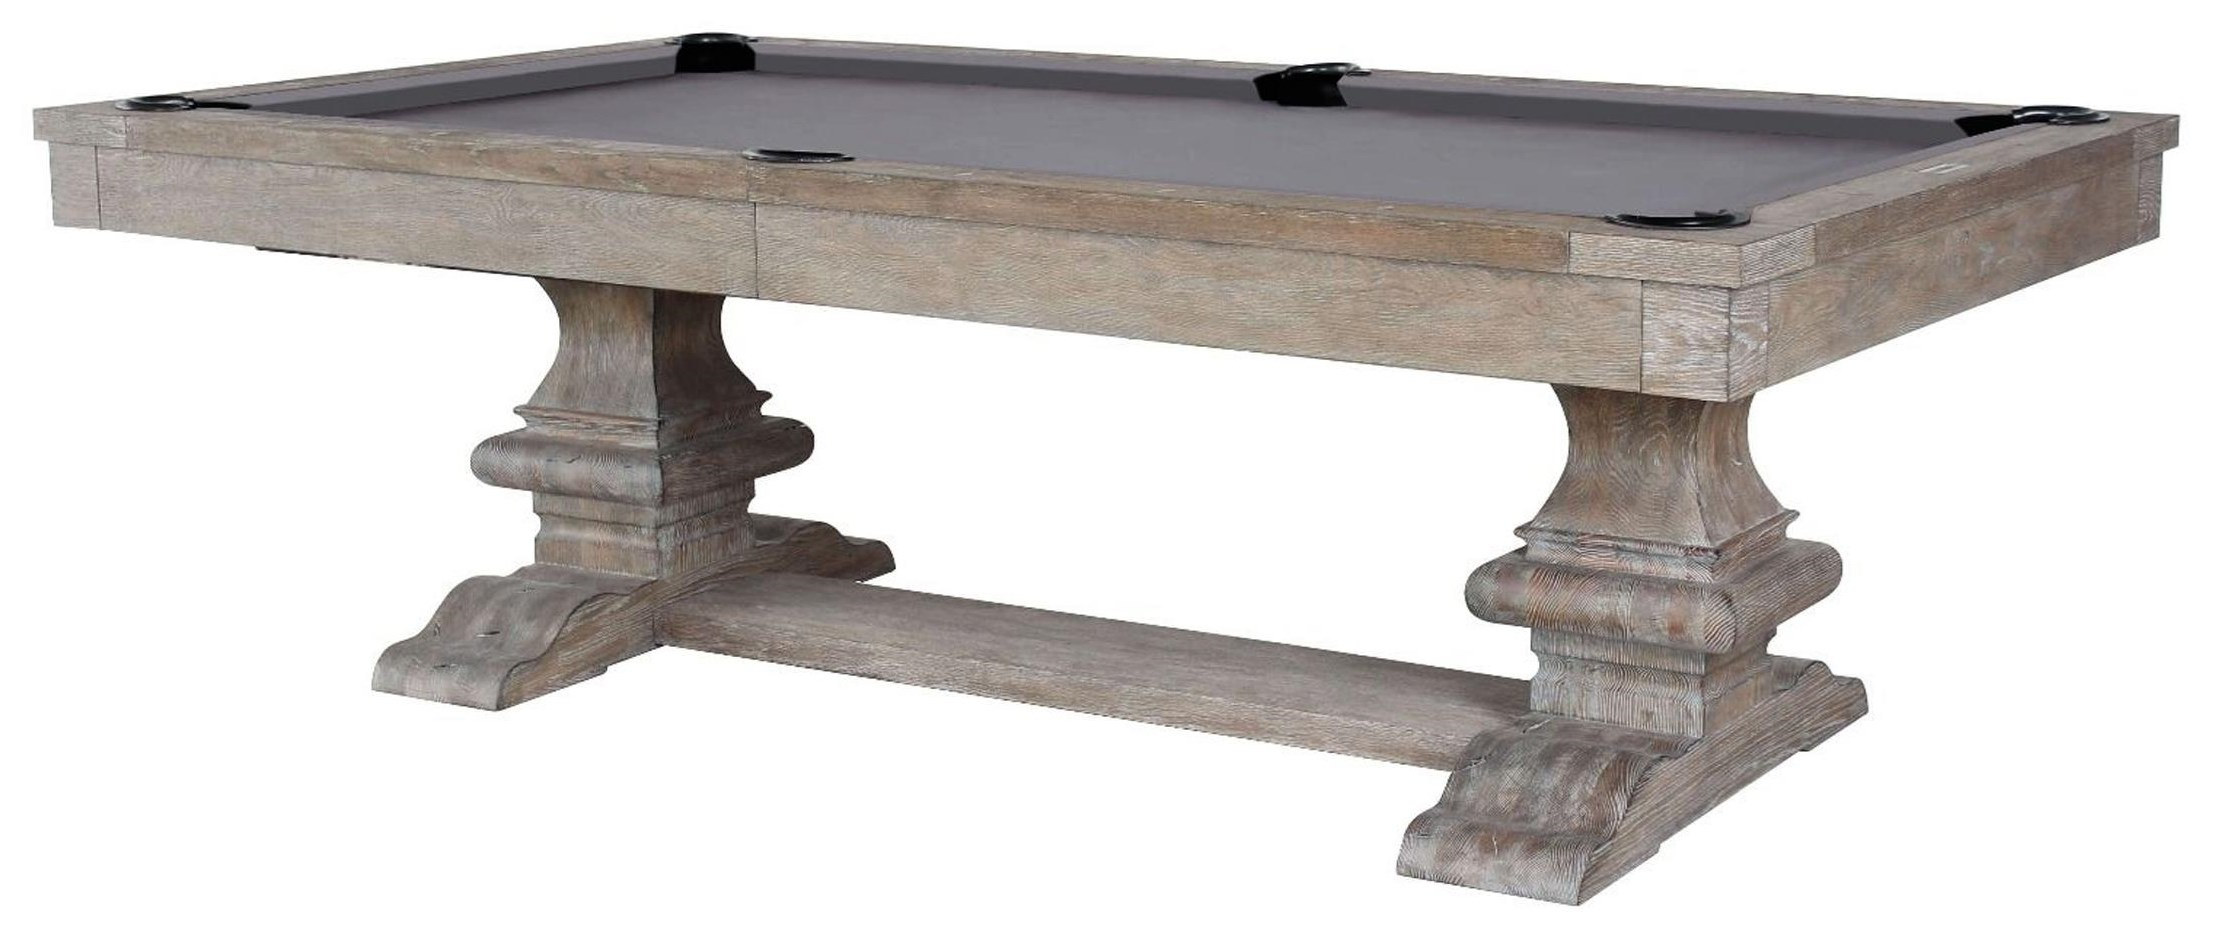 Beaumont 8' Pool Table by Plank & Hide at Johnny Janosik